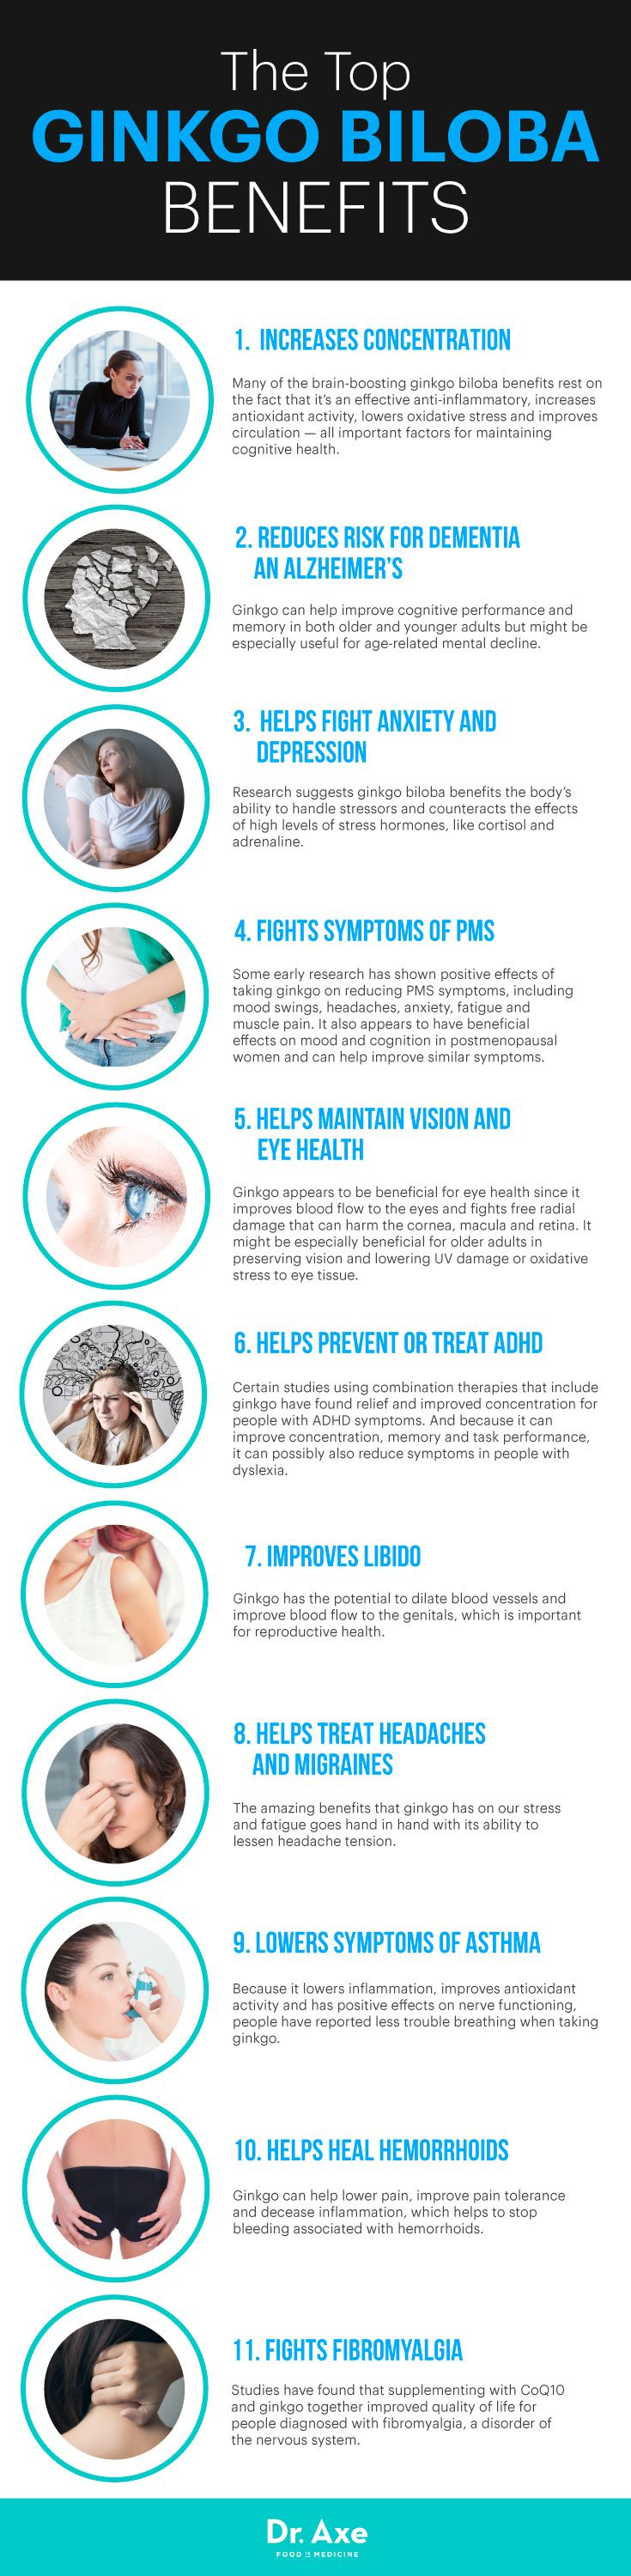 Ginkgo benefits infographic - Dr. Axe http://www.draxe.com #health #holistic #natural